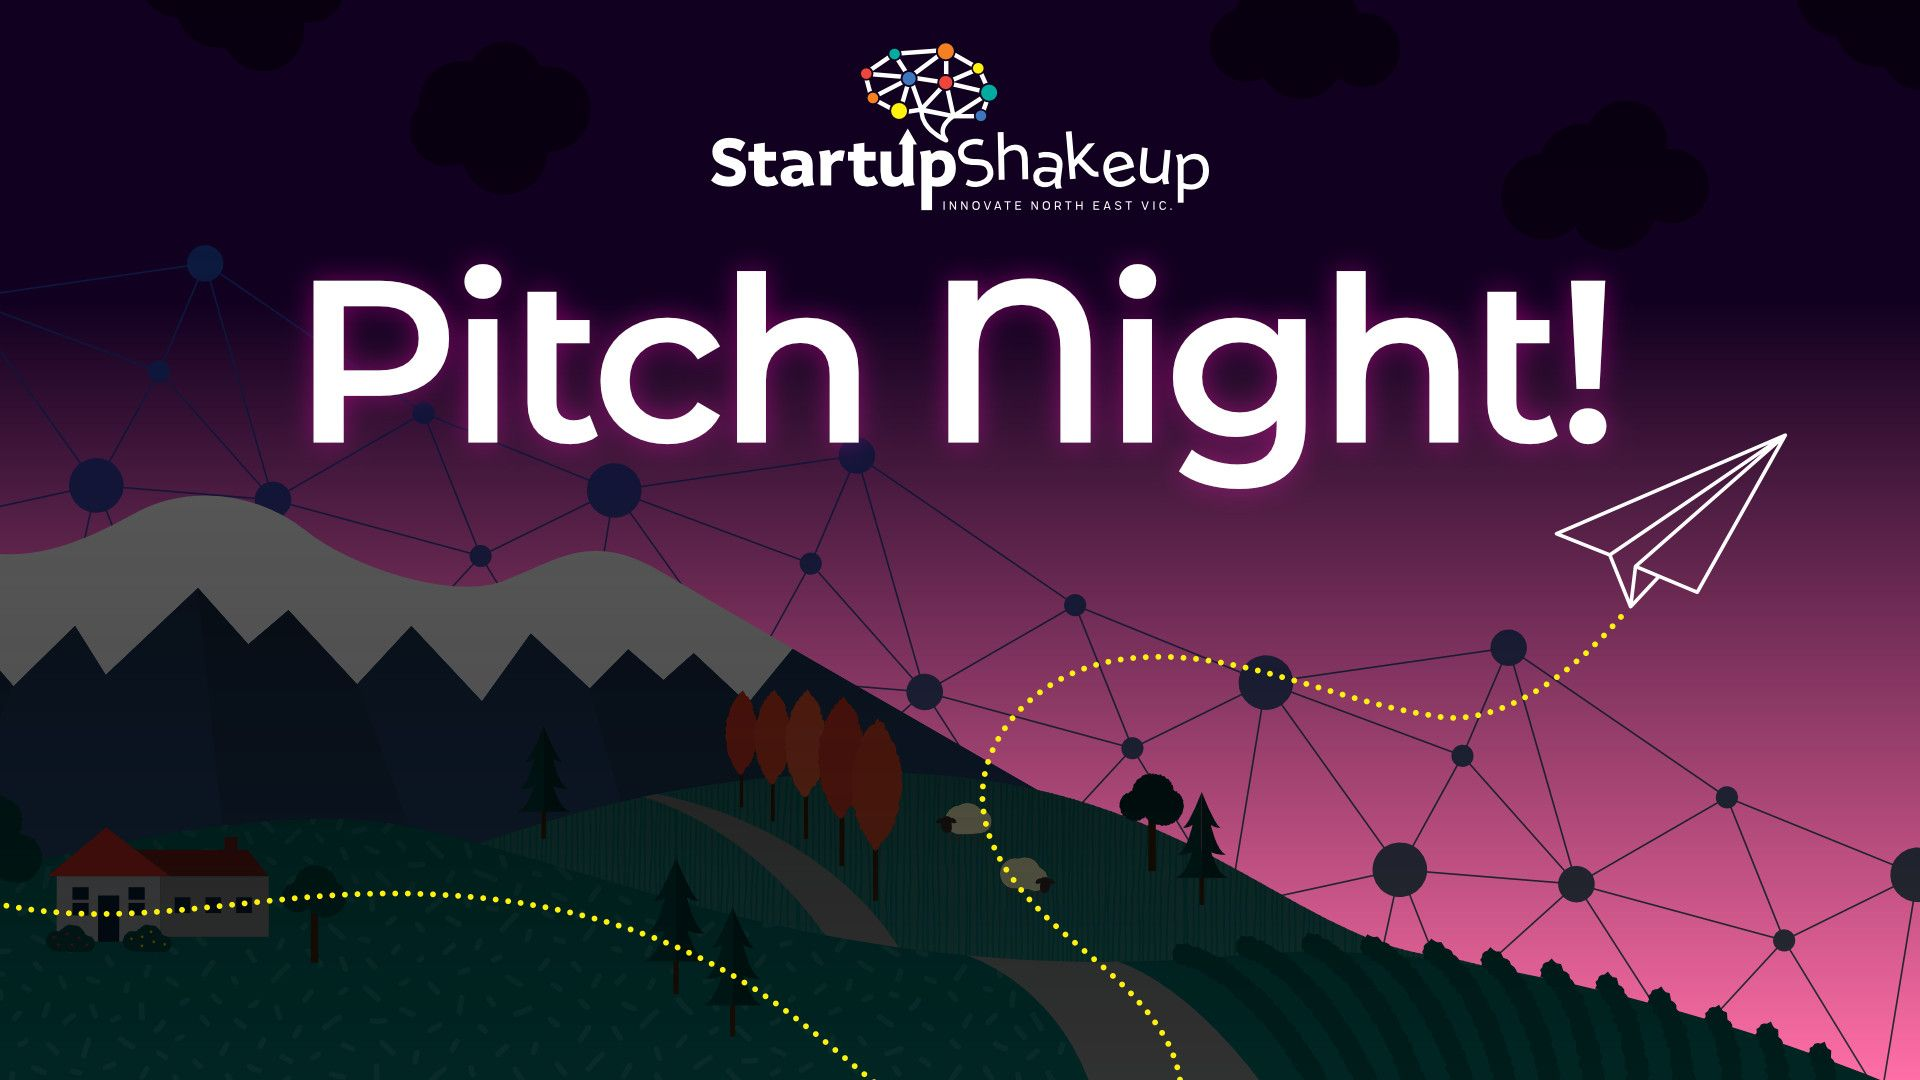 Get ready to pitch for China at Startup Shakeup event